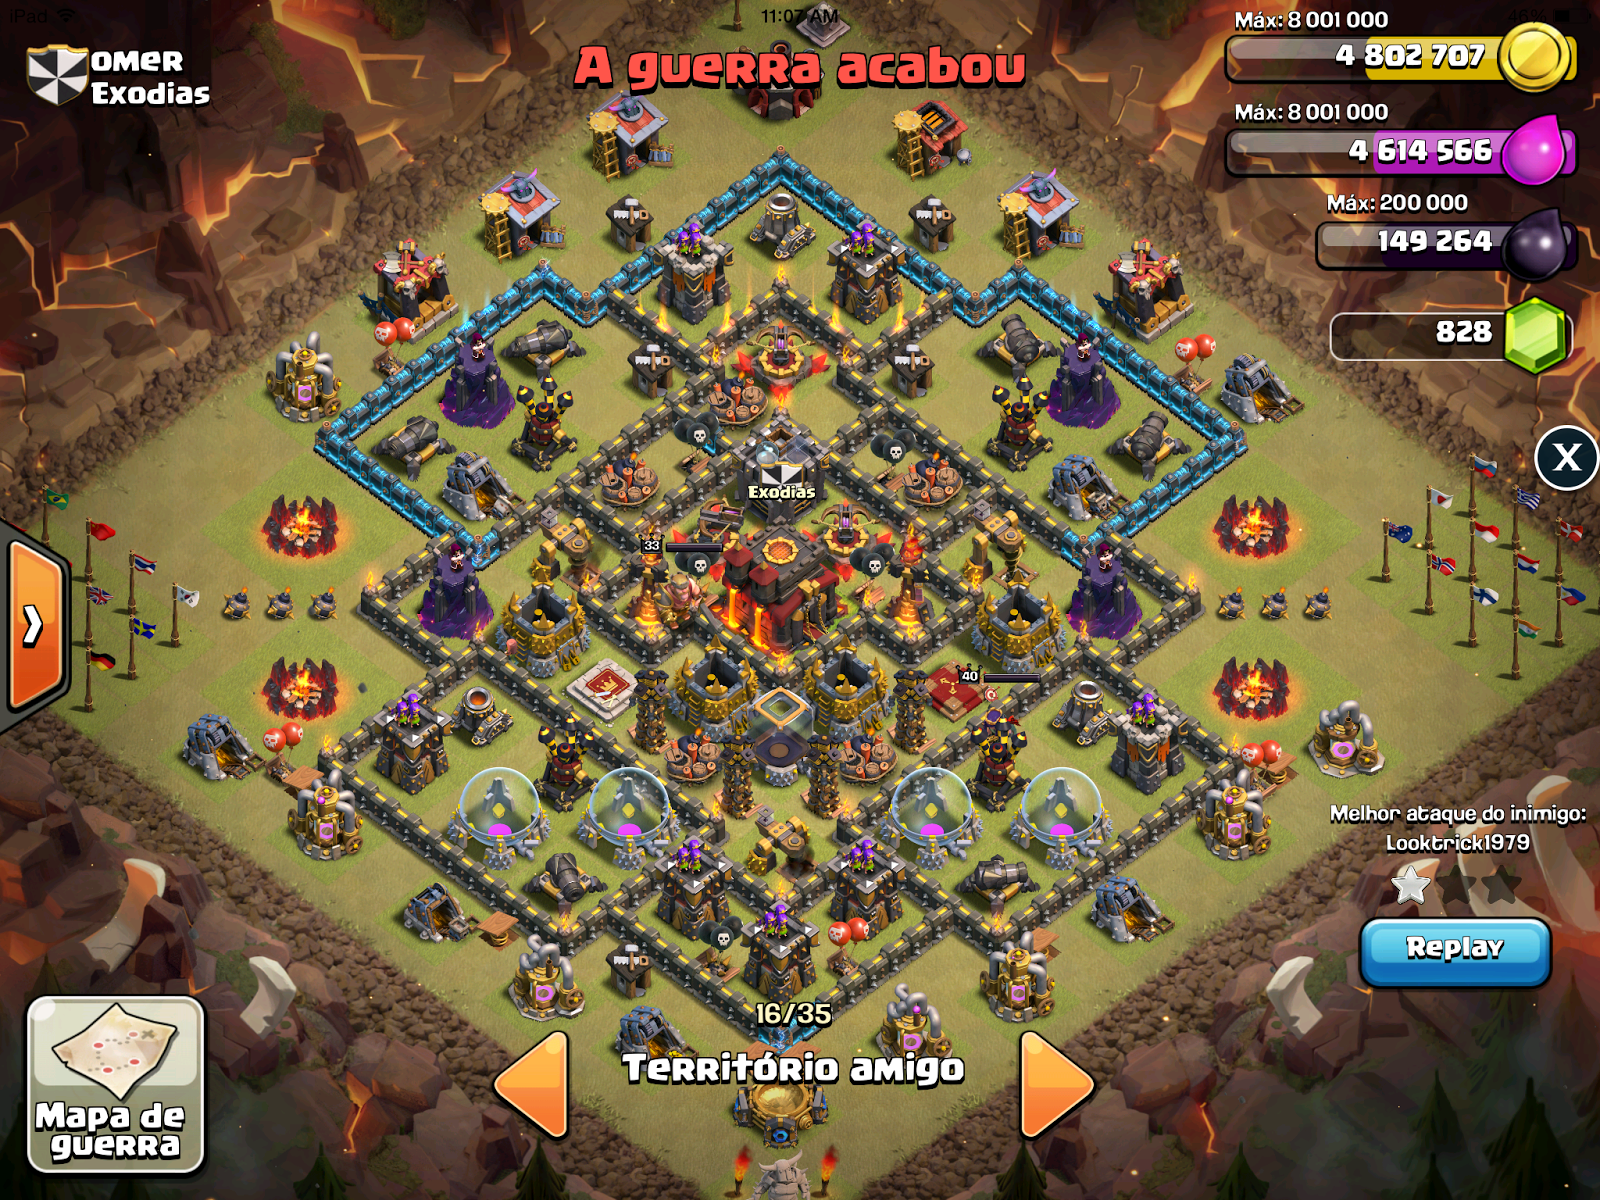 Clash of clans base designs for town hall 10, town hall 9, town hall 8